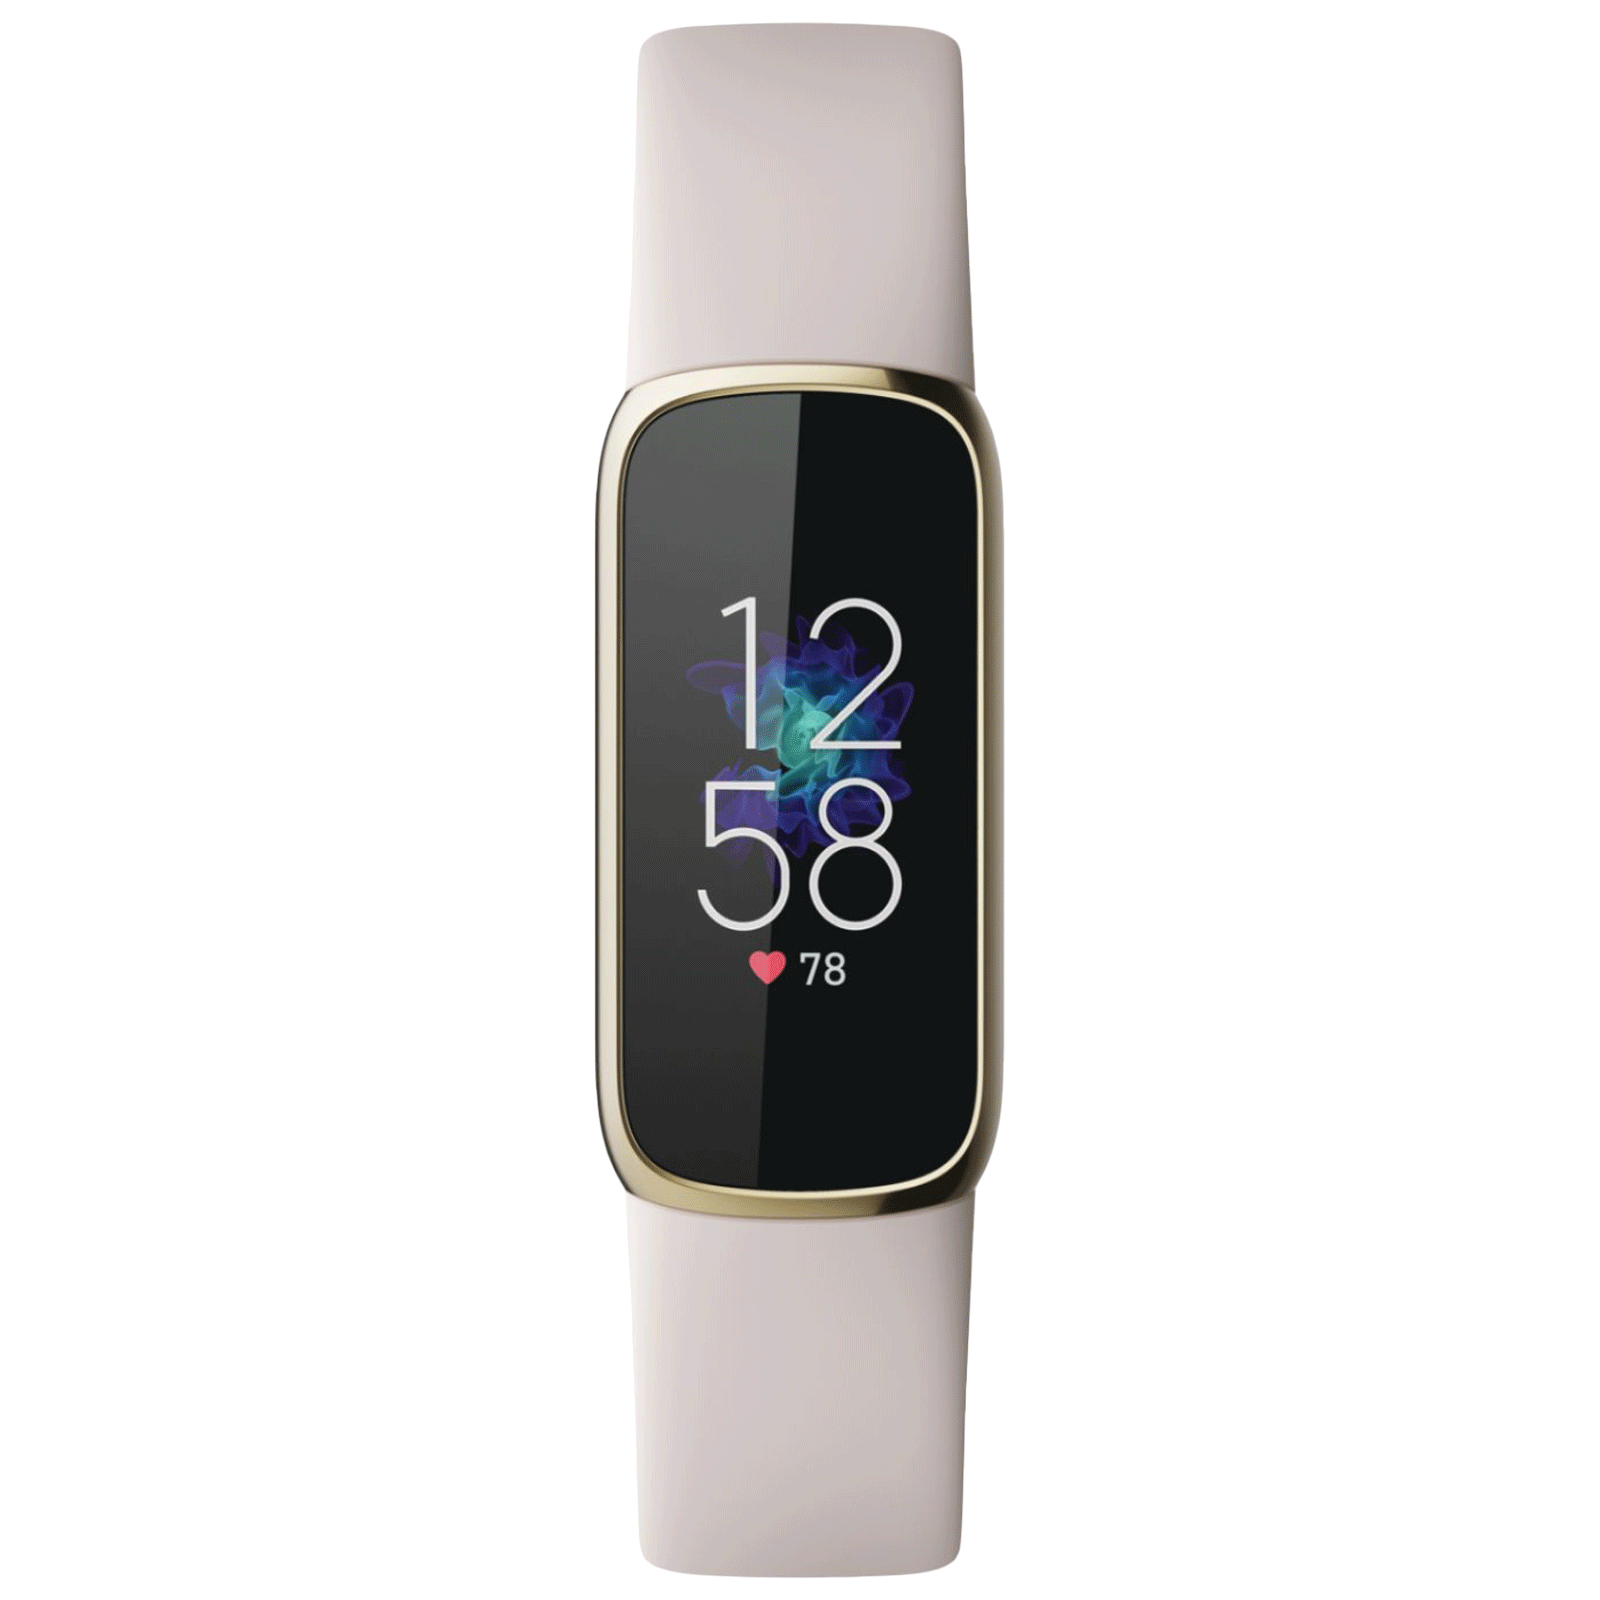 Fitbit Luxe Smart Band (19.30mm) (SPO2 Monitoring, FB422GLWT, Soft Gold/Lunar White, Silicone Band)_1